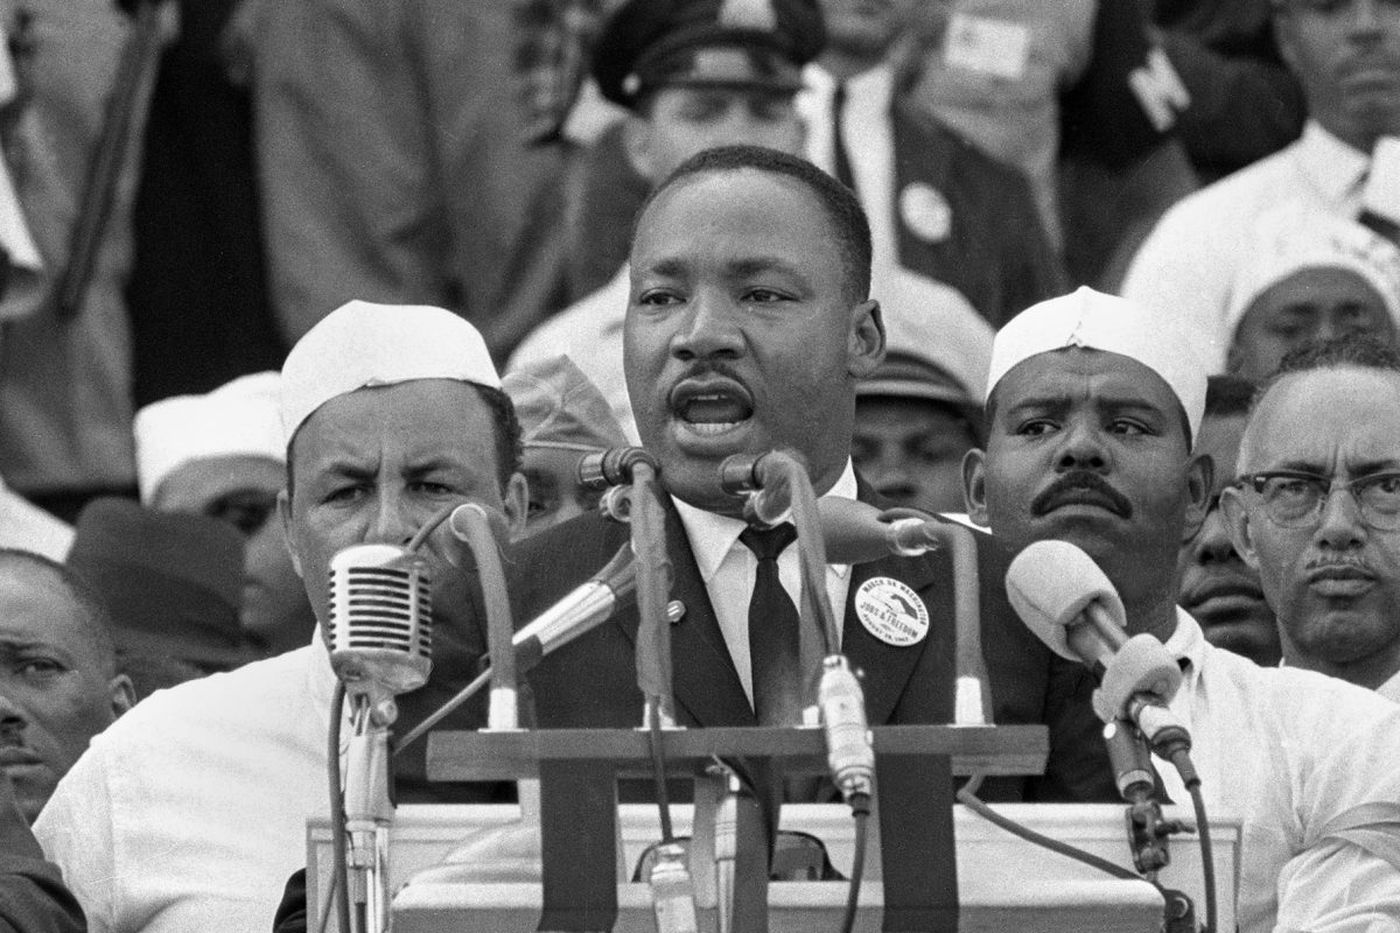 America should keep Dr. King's name out of its mouth this year | Opinion